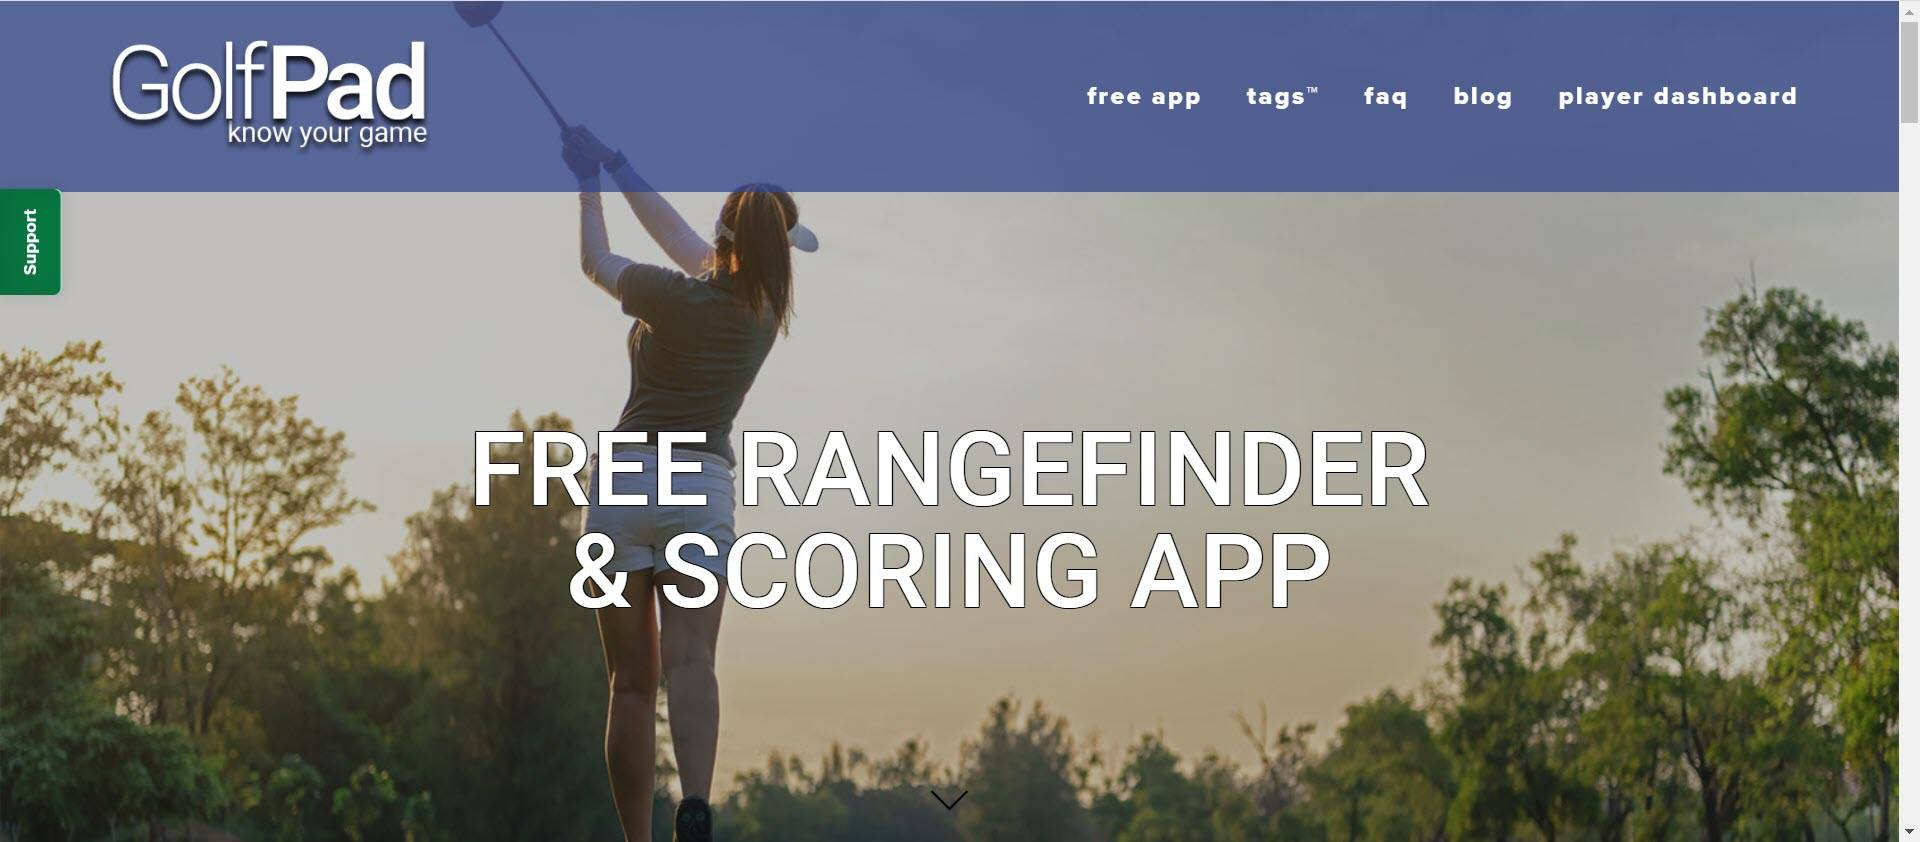 Best Golf Affiliate Programs - Golf Pad